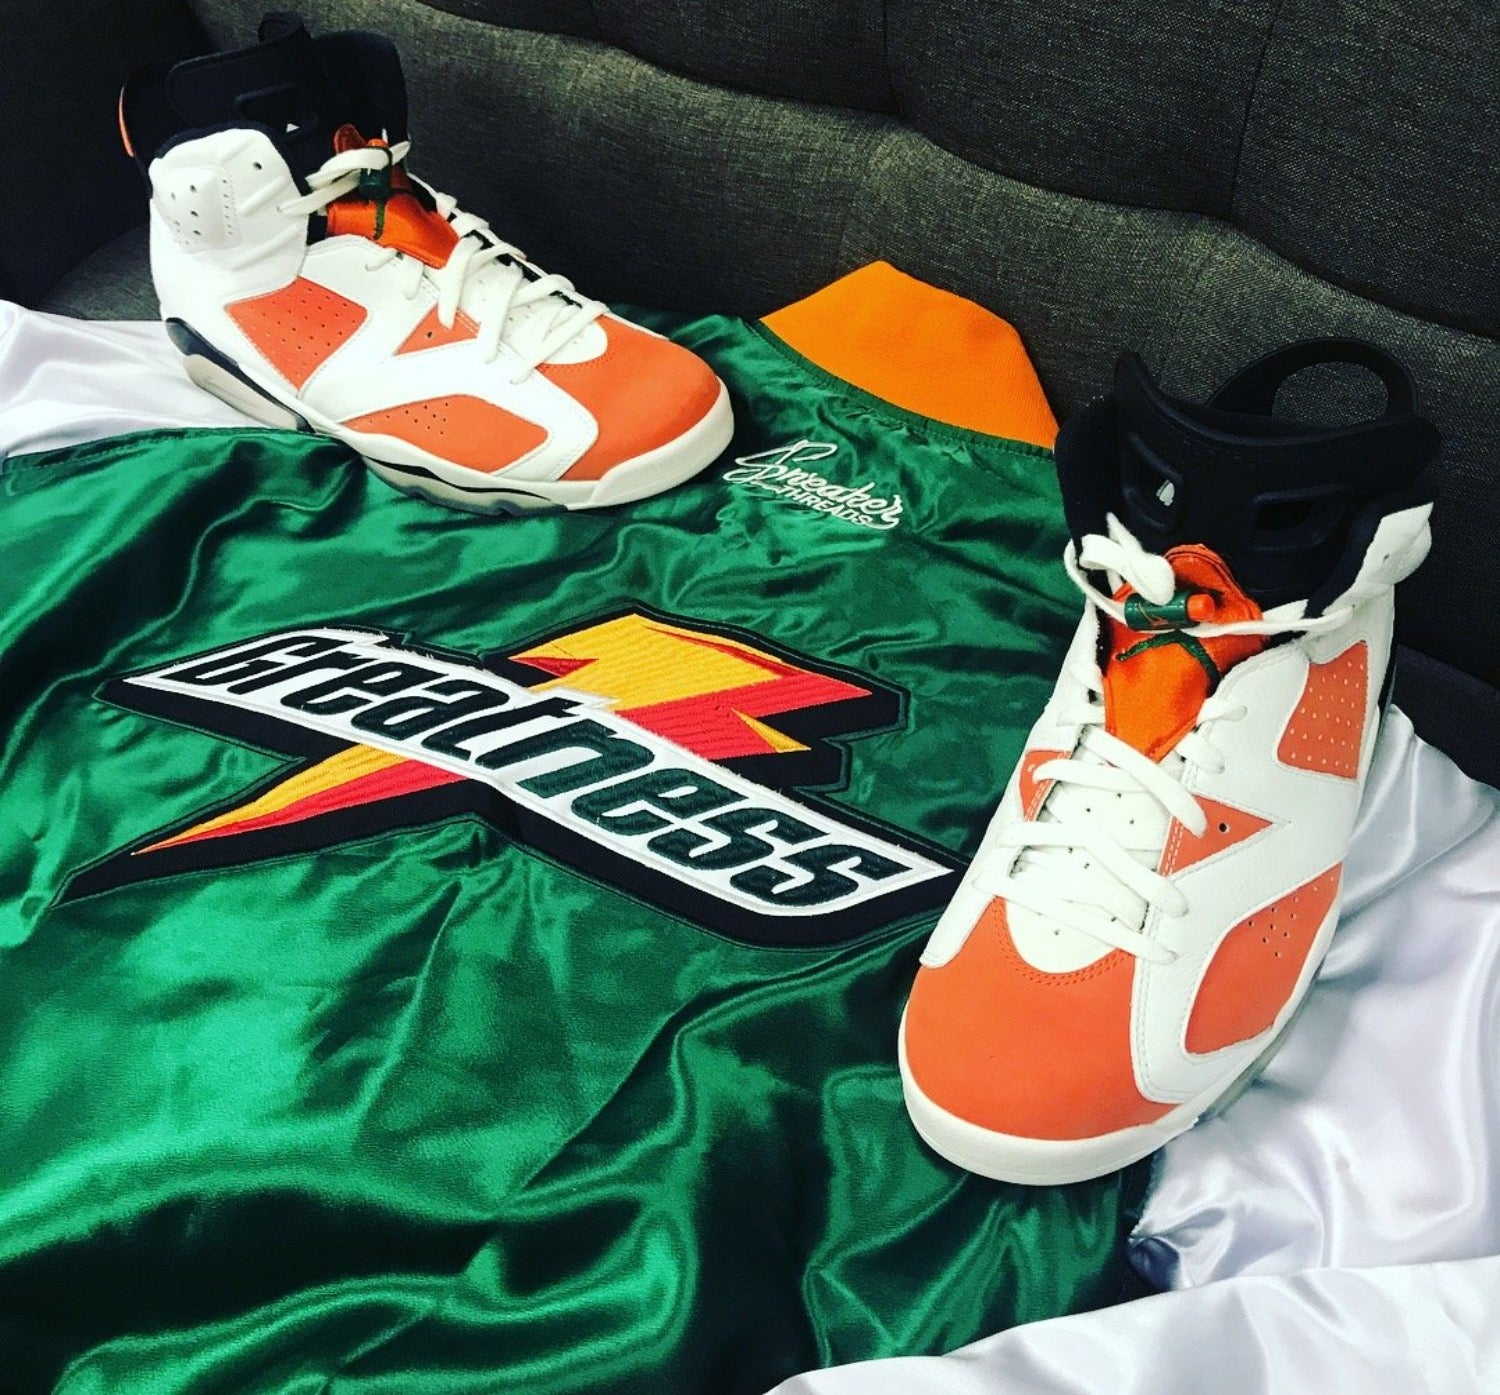 Jordan 6 Like Mike Greatness Bomber